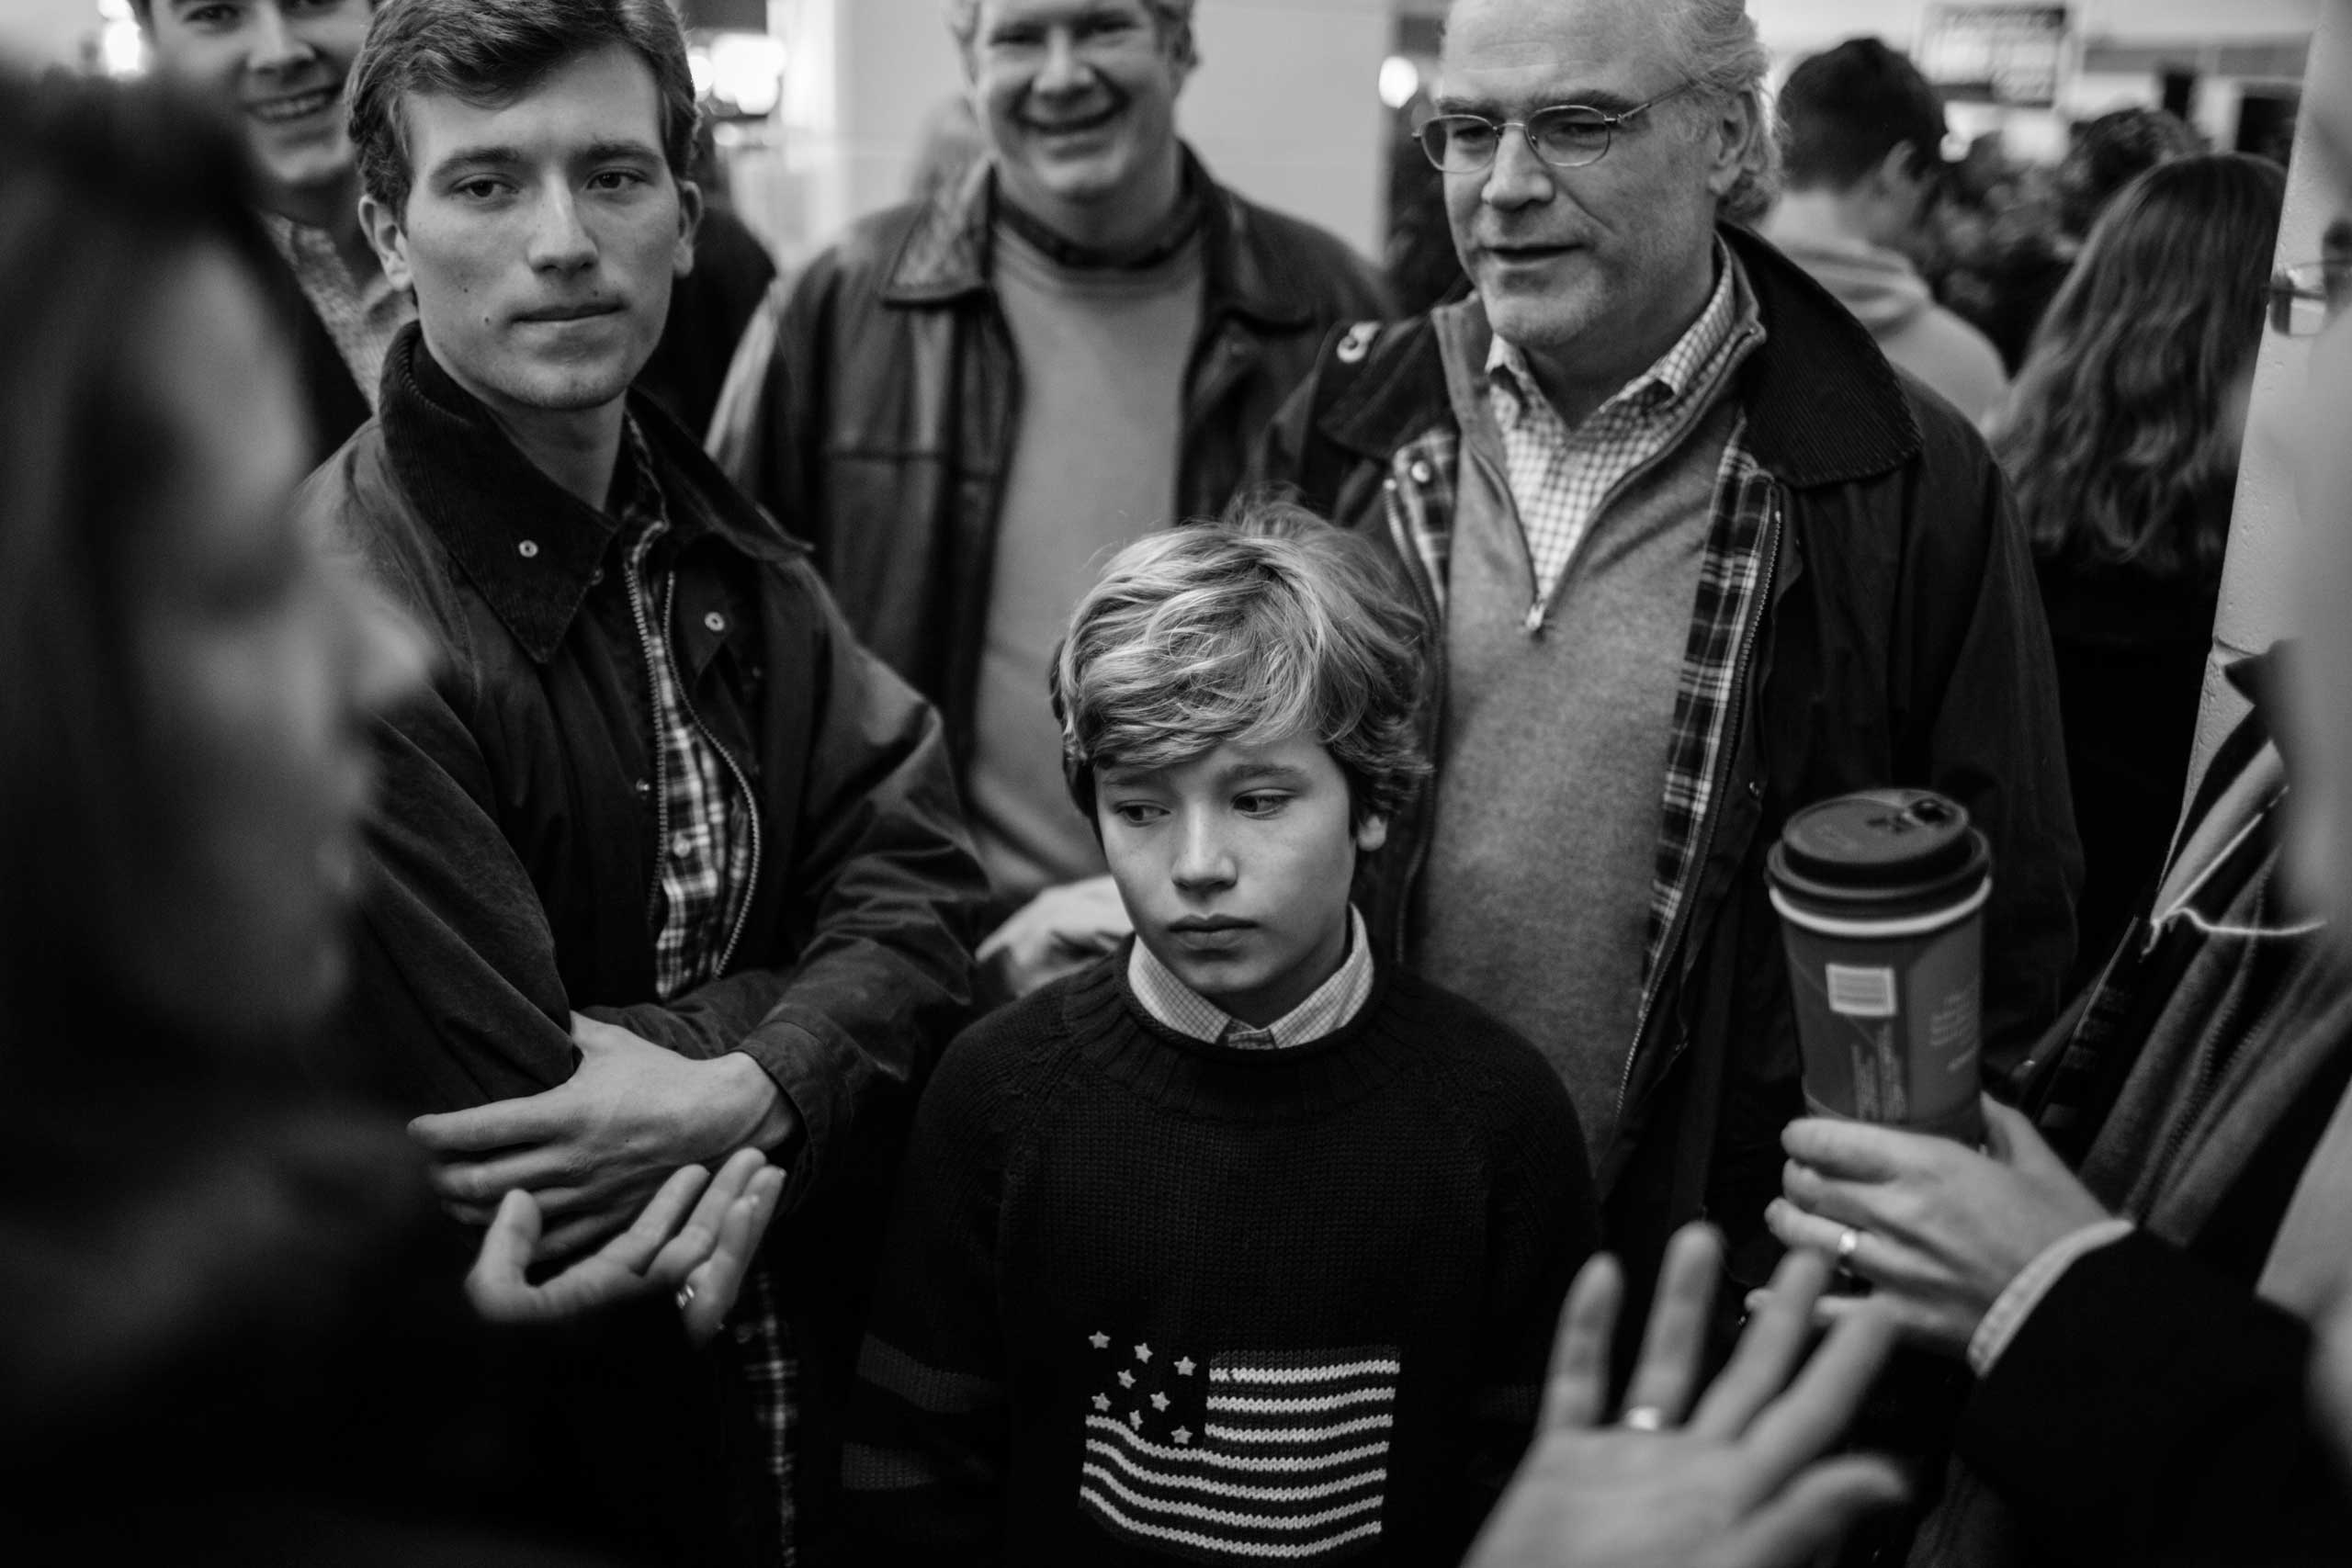 February 7, 2016 - Londonderry, New Hampshire: A boy stands encircled by his family at a Marco Rubio Pancake event.